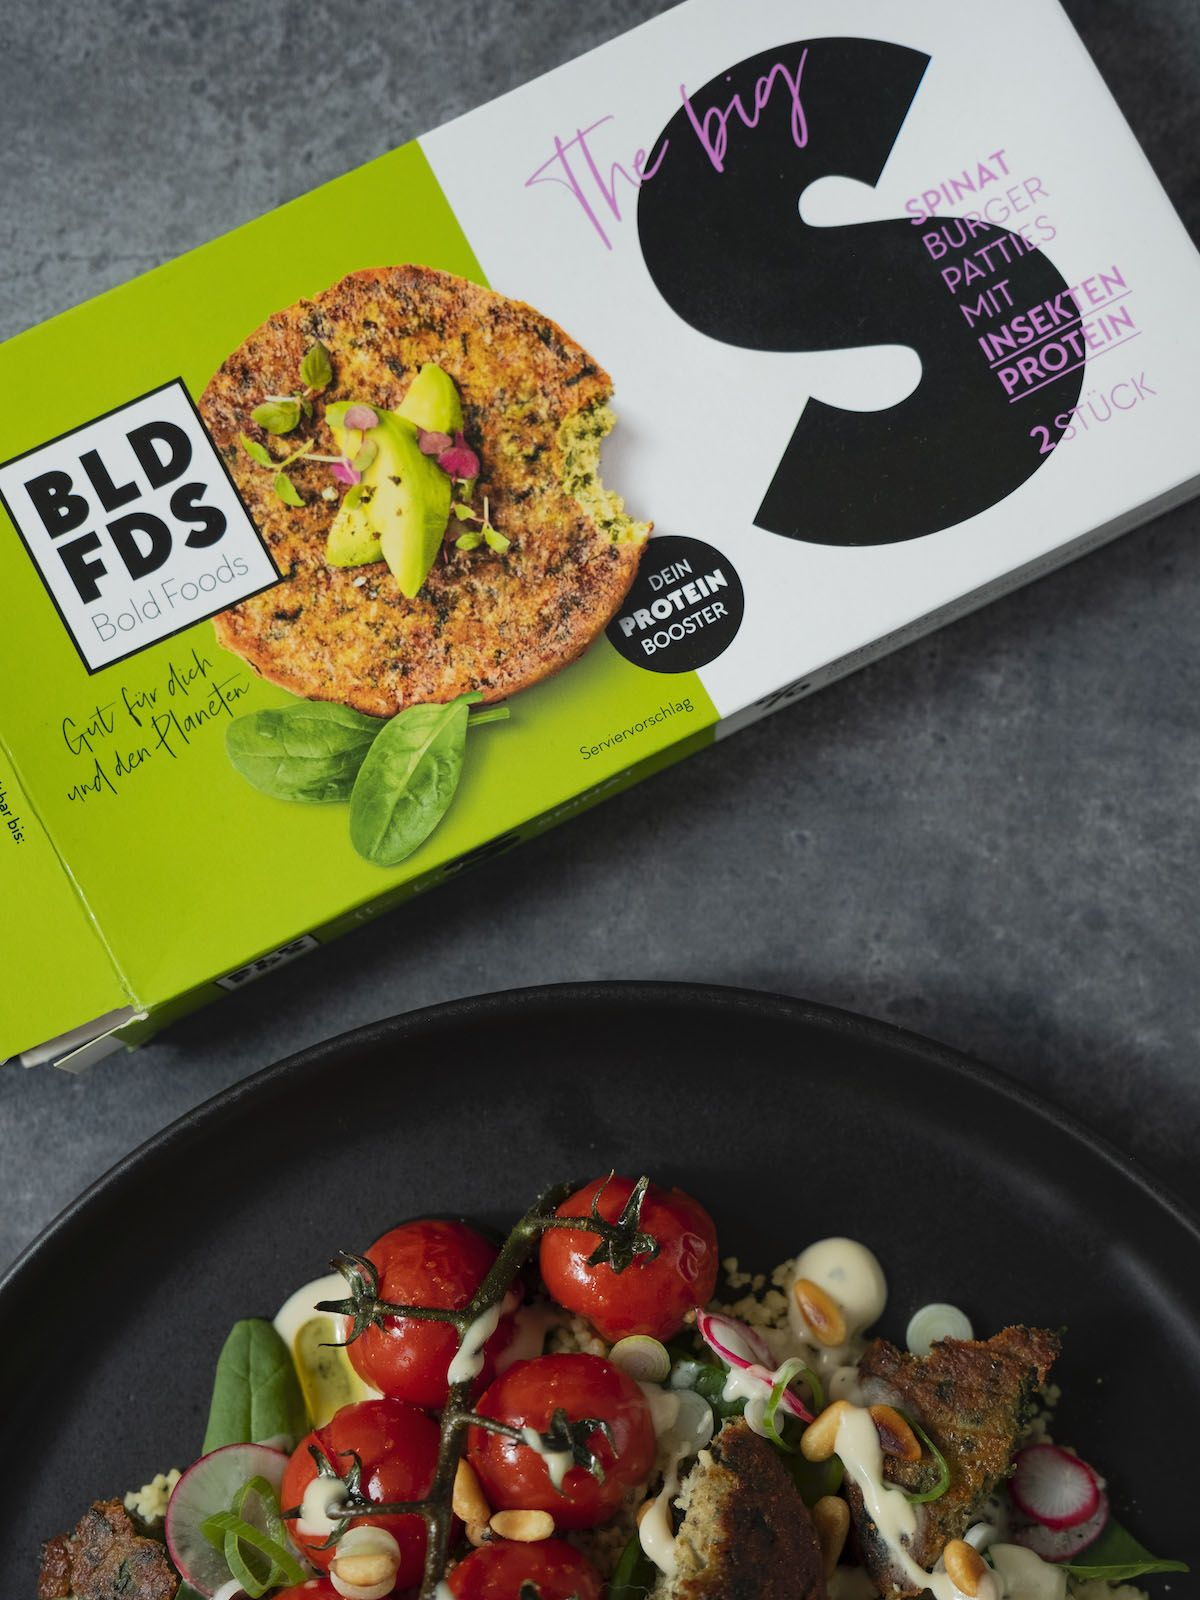 About Fuel, Foodblog, Rezept, Bold Foods The big S, Patties, Tomaten, Spinat, Salat